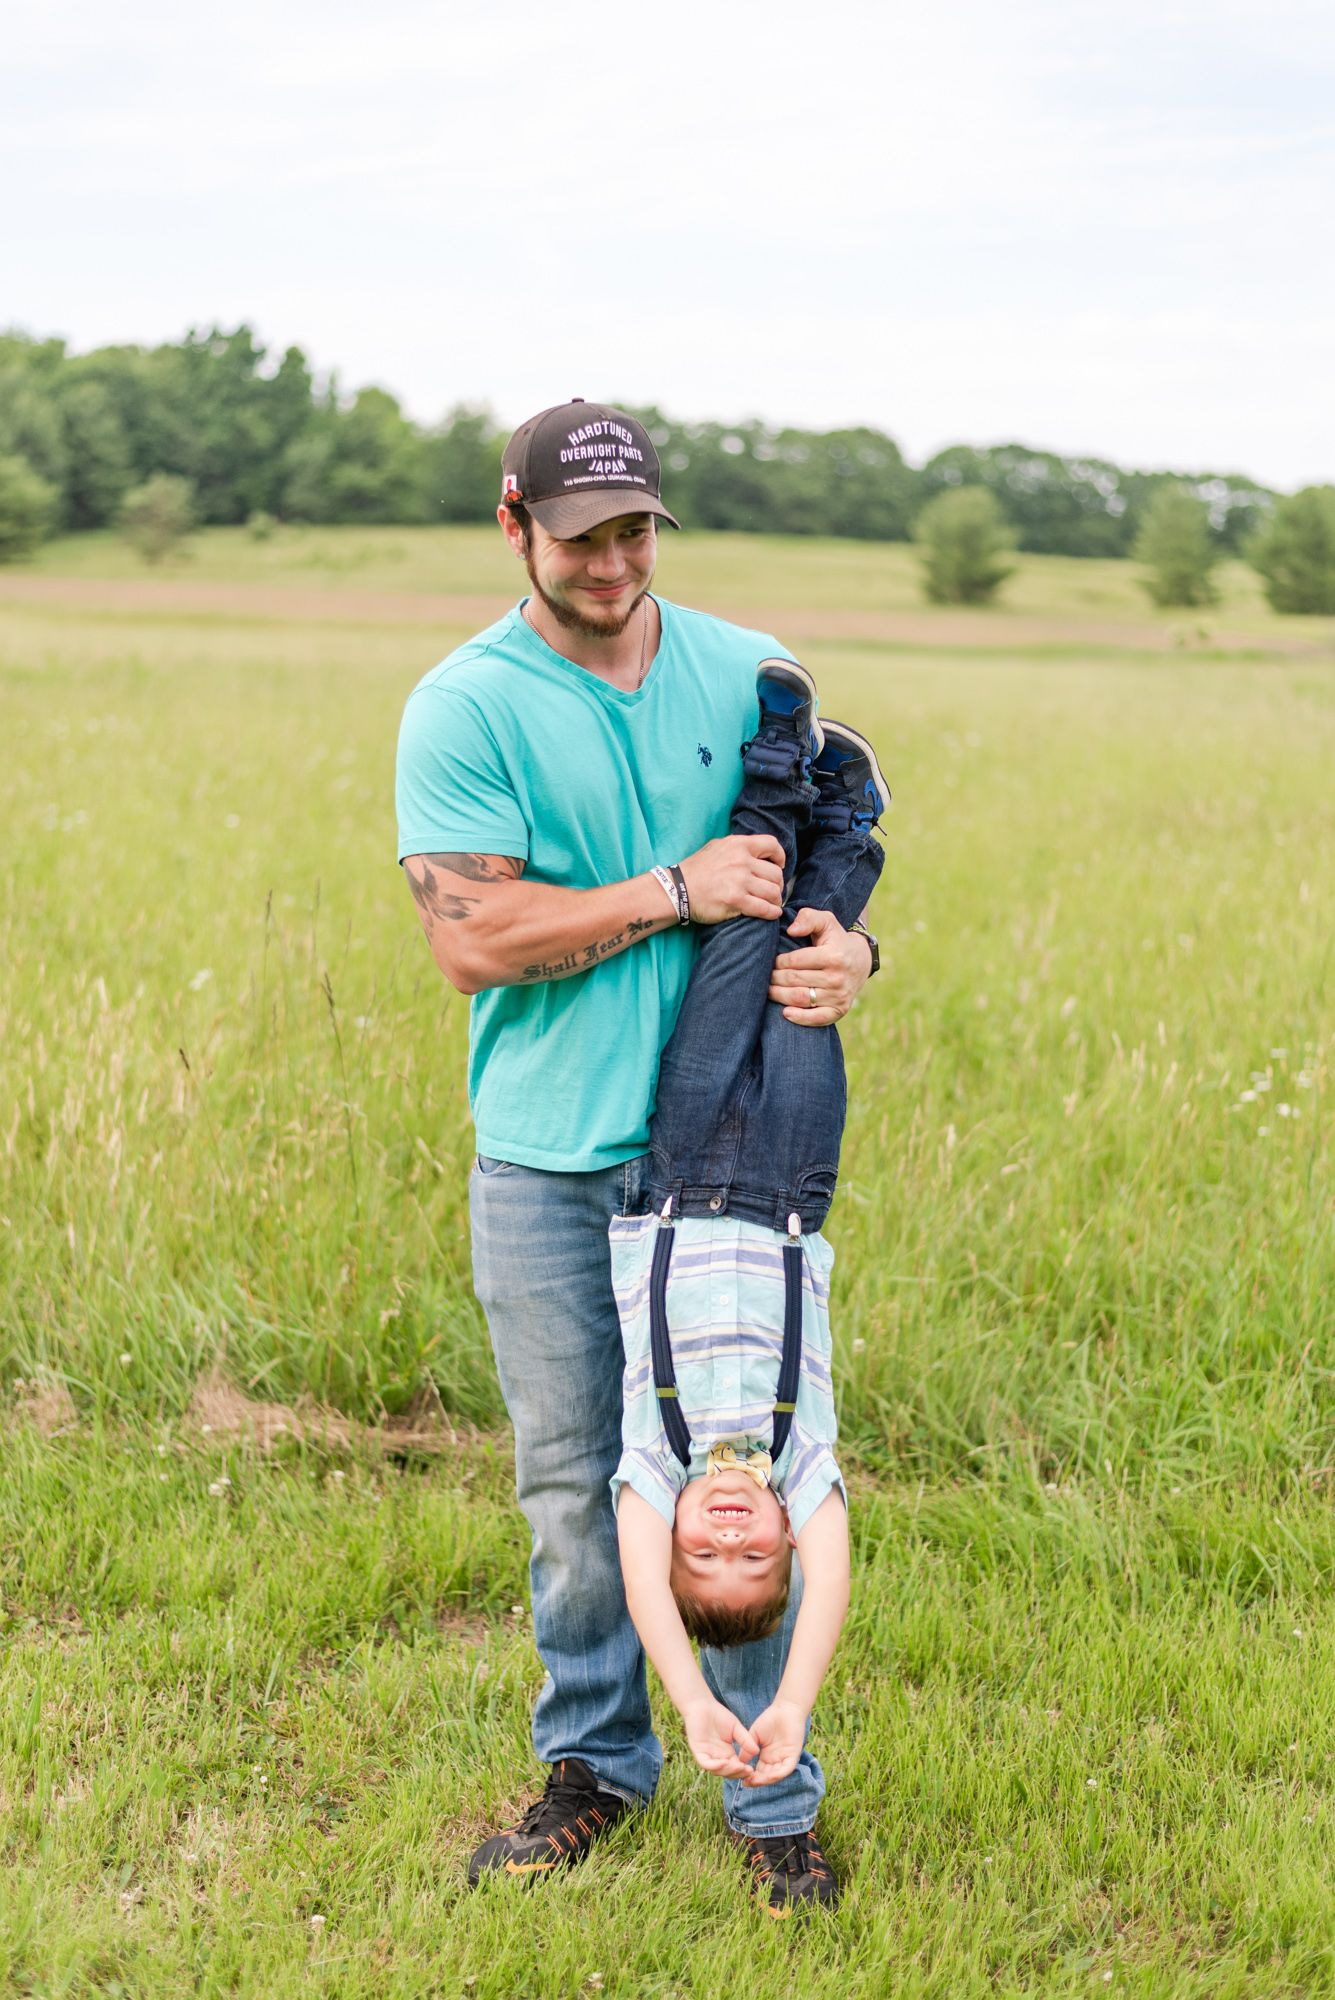 Dad holding boy upside down in field in Clarion Pennsylvania